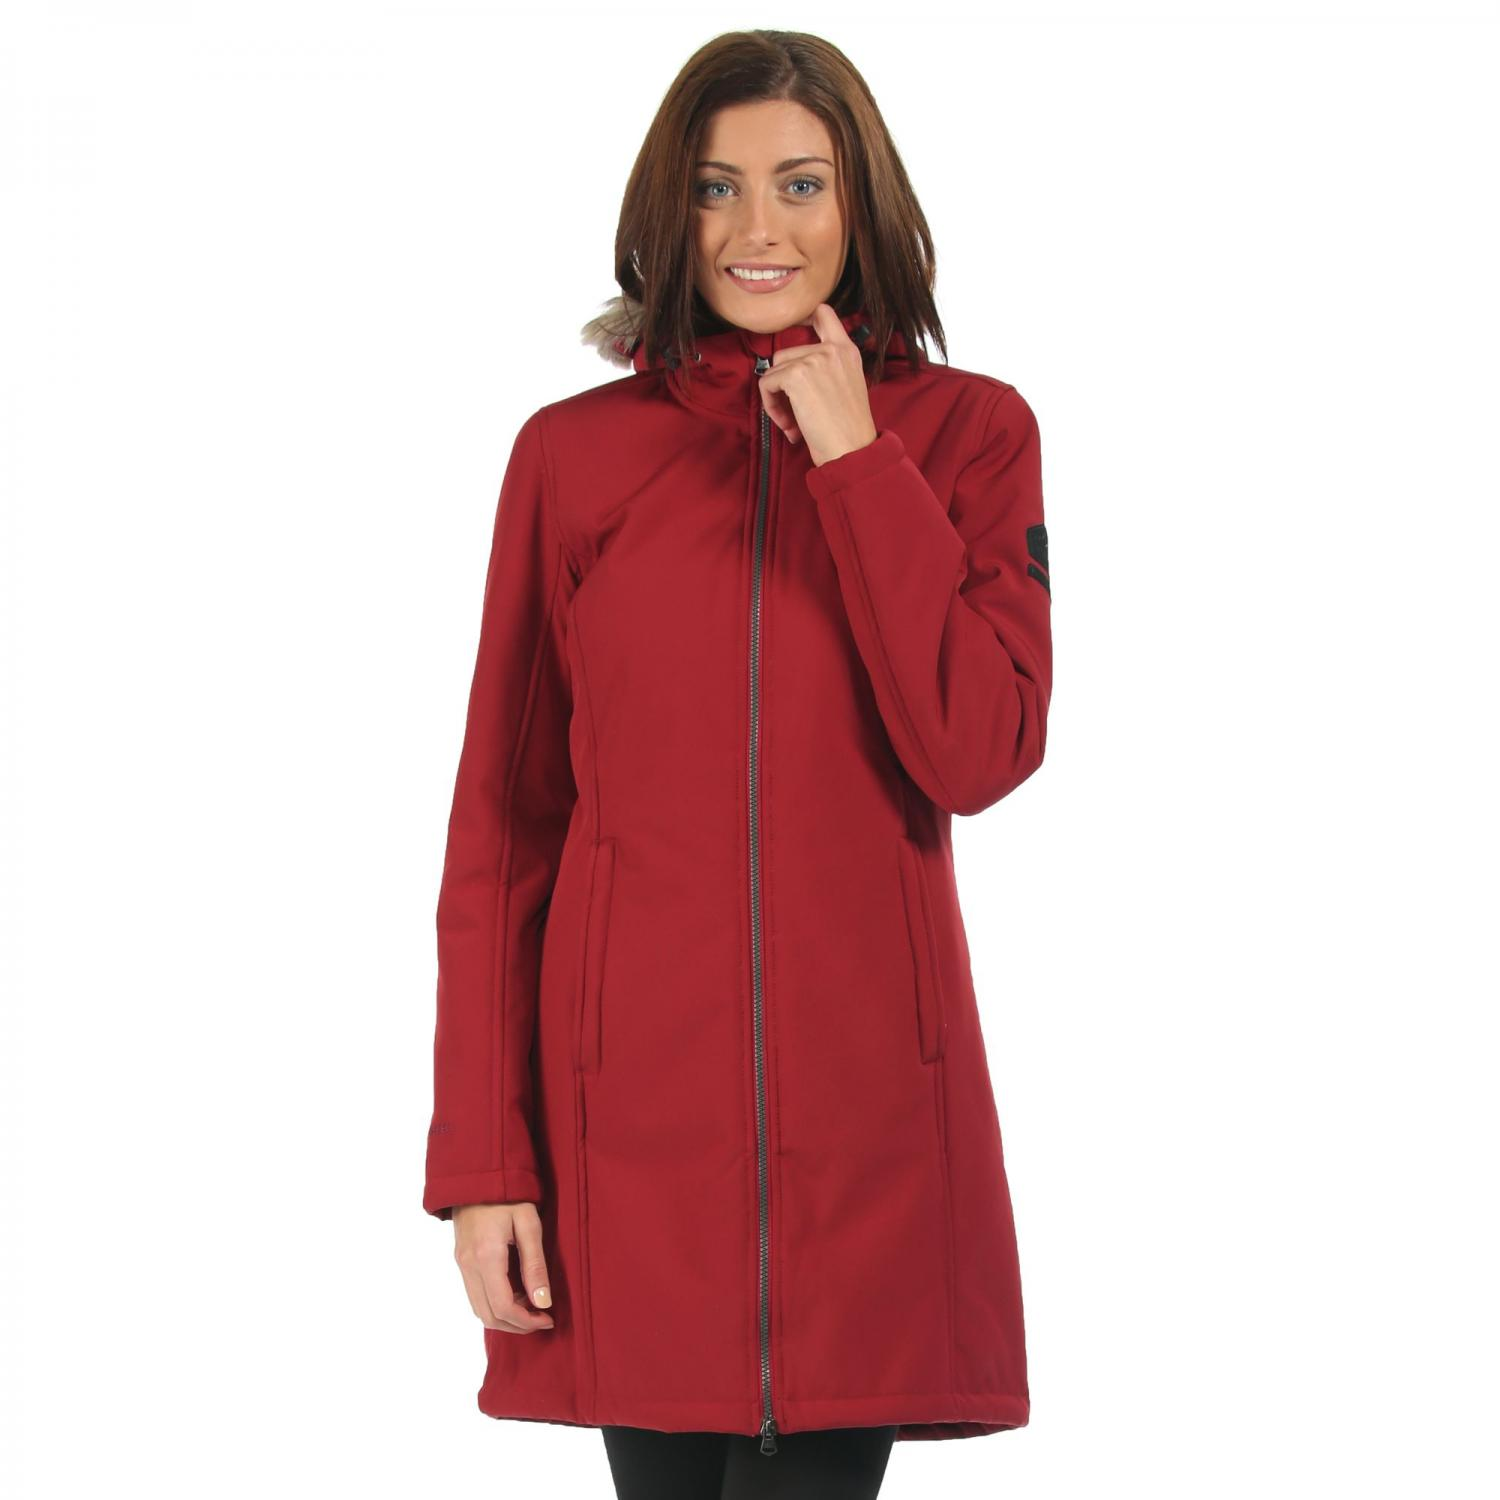 Adhara Softshell Jacket Rhubarb Red